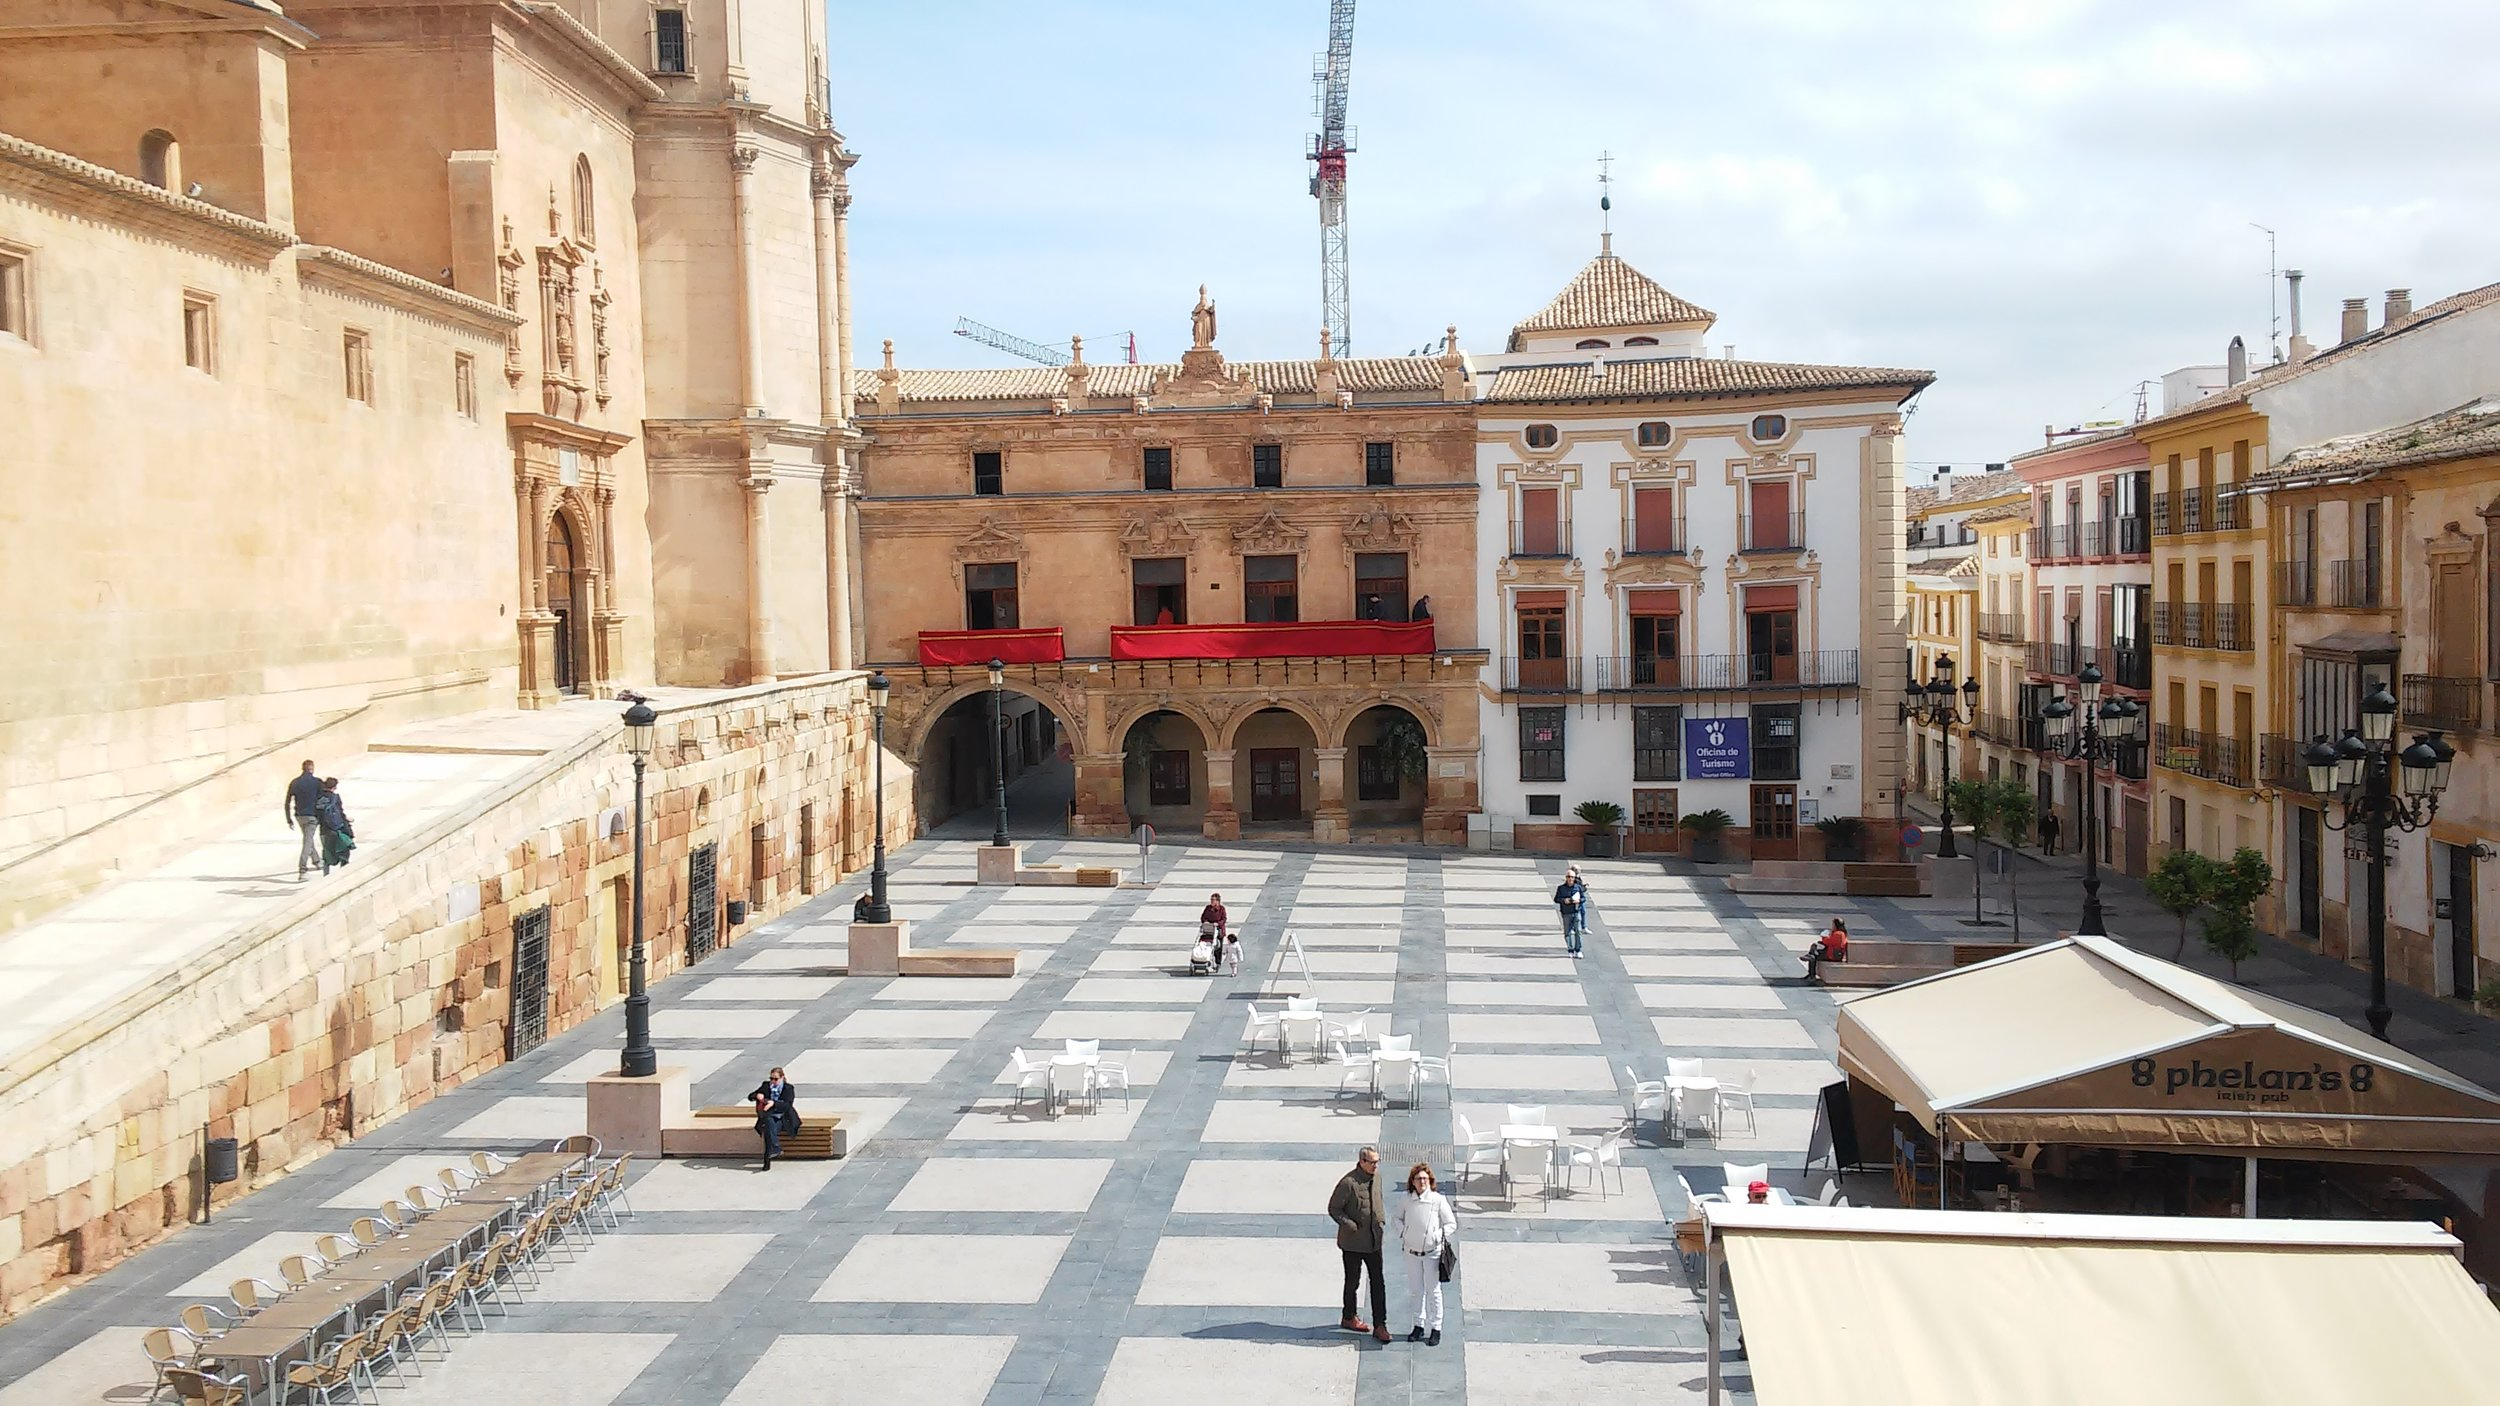 The Collegiate church of San Patricio in Lorca viewed from the Town Hall balcony.